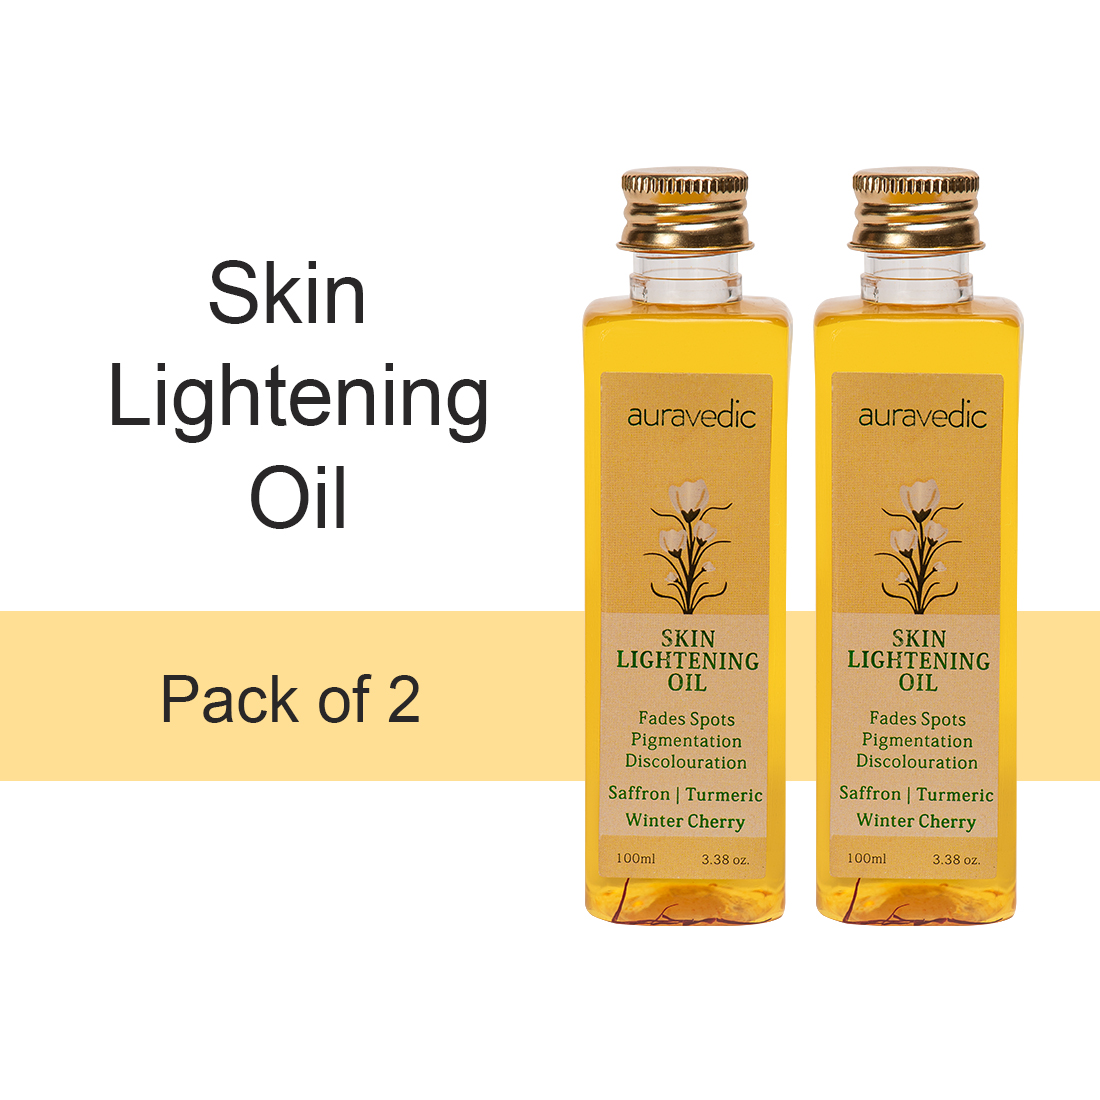 Skin Lightening Oil (Pack Of 2)- Turmeric & Winter Cherry